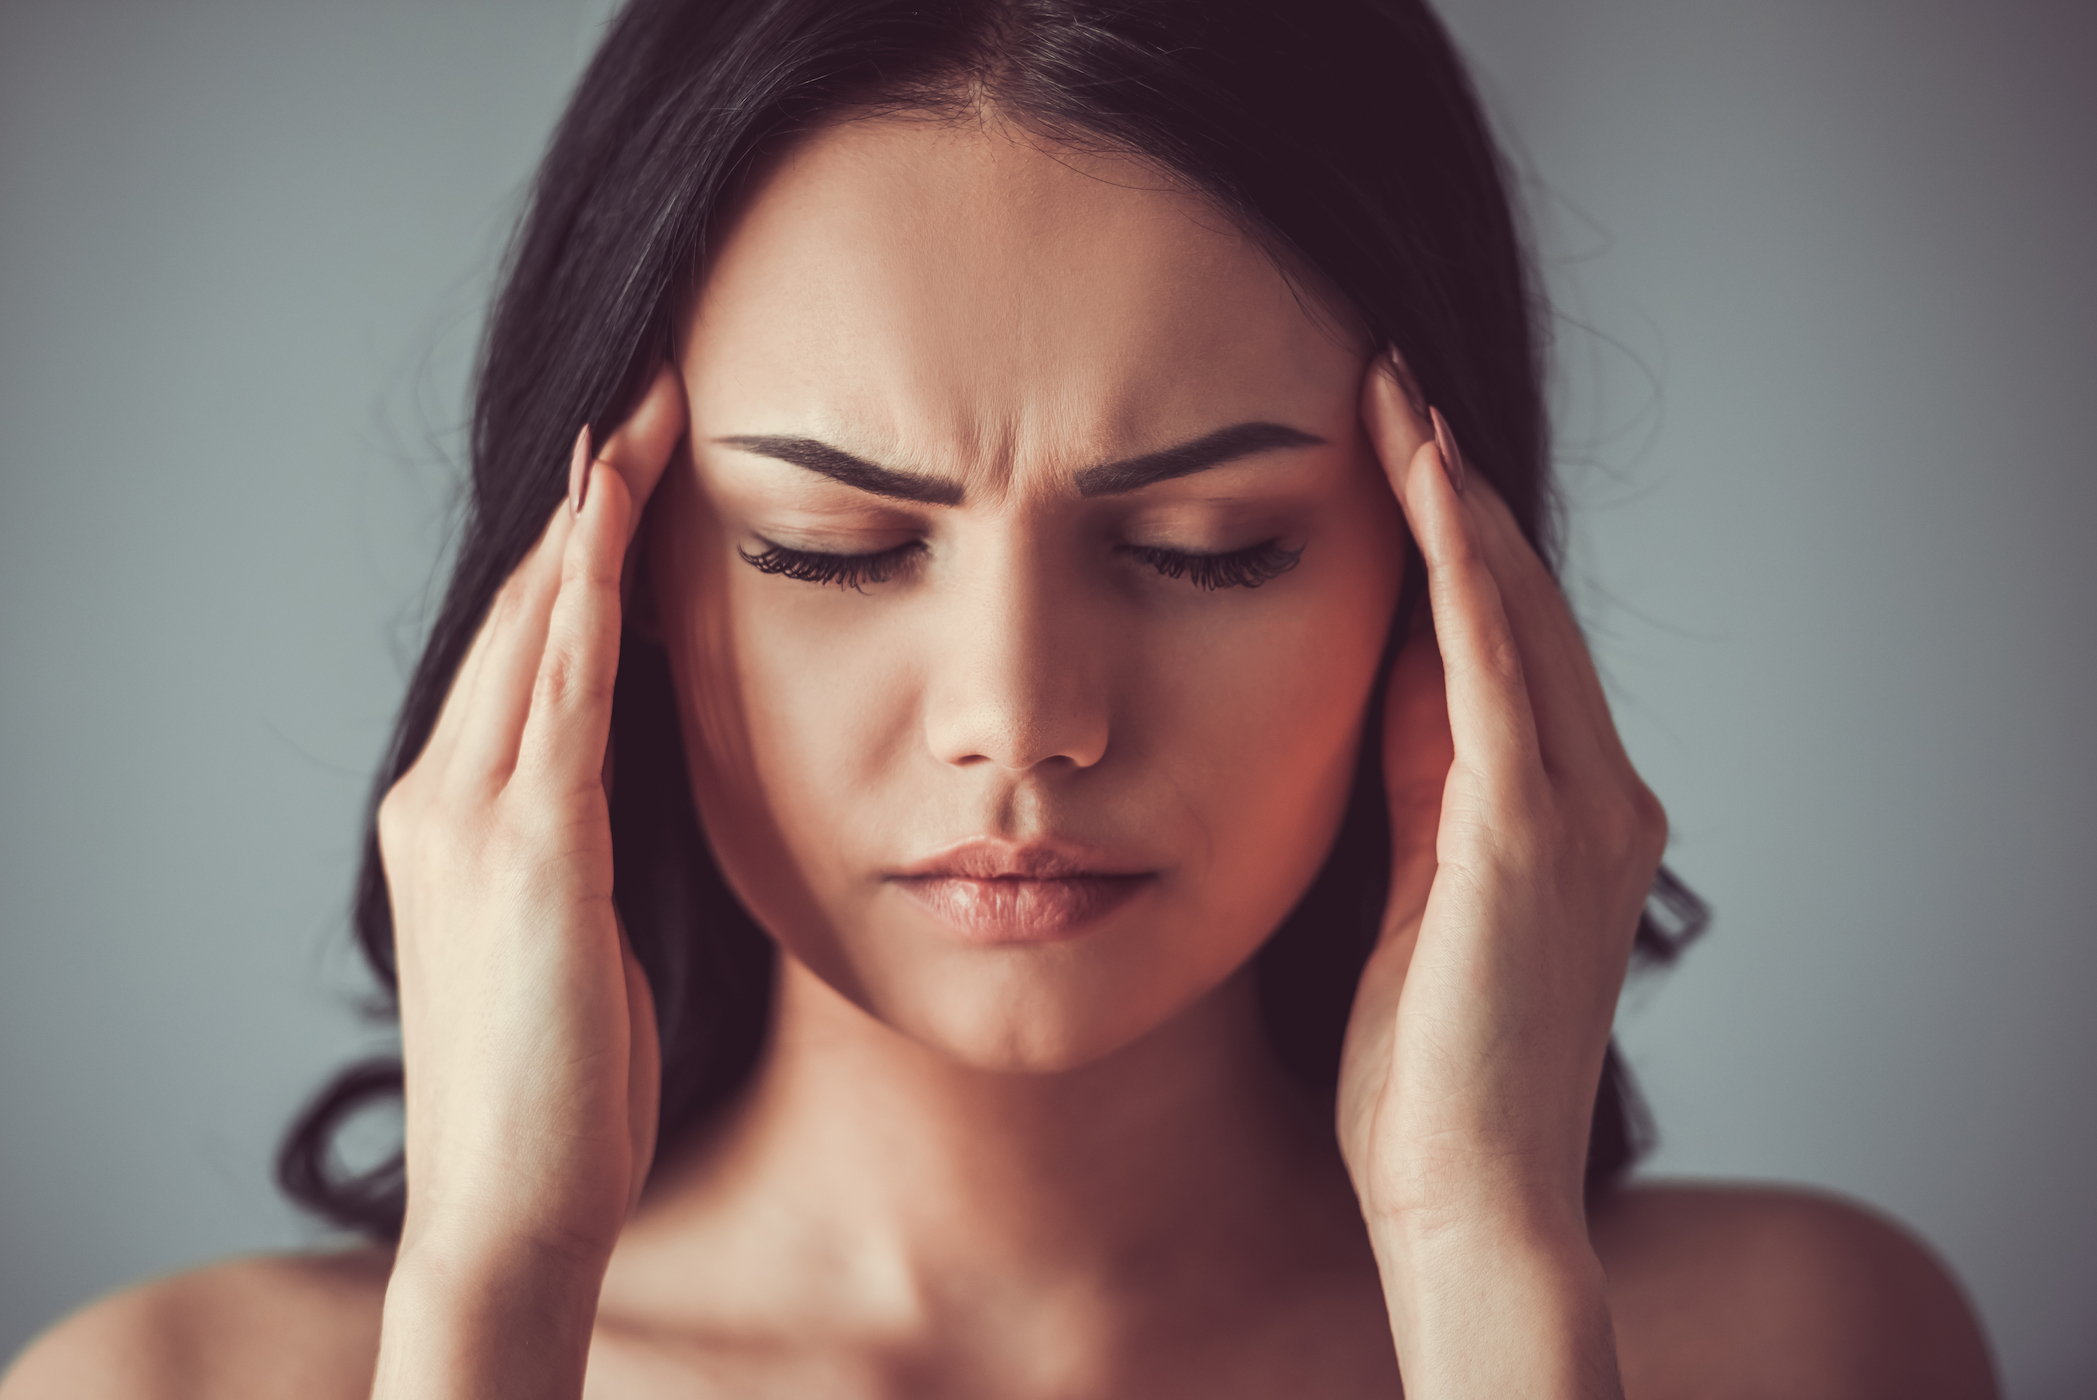 Researchers have discovered evidence of why head and face pain causes more suffering than pain elsewhere in the body.